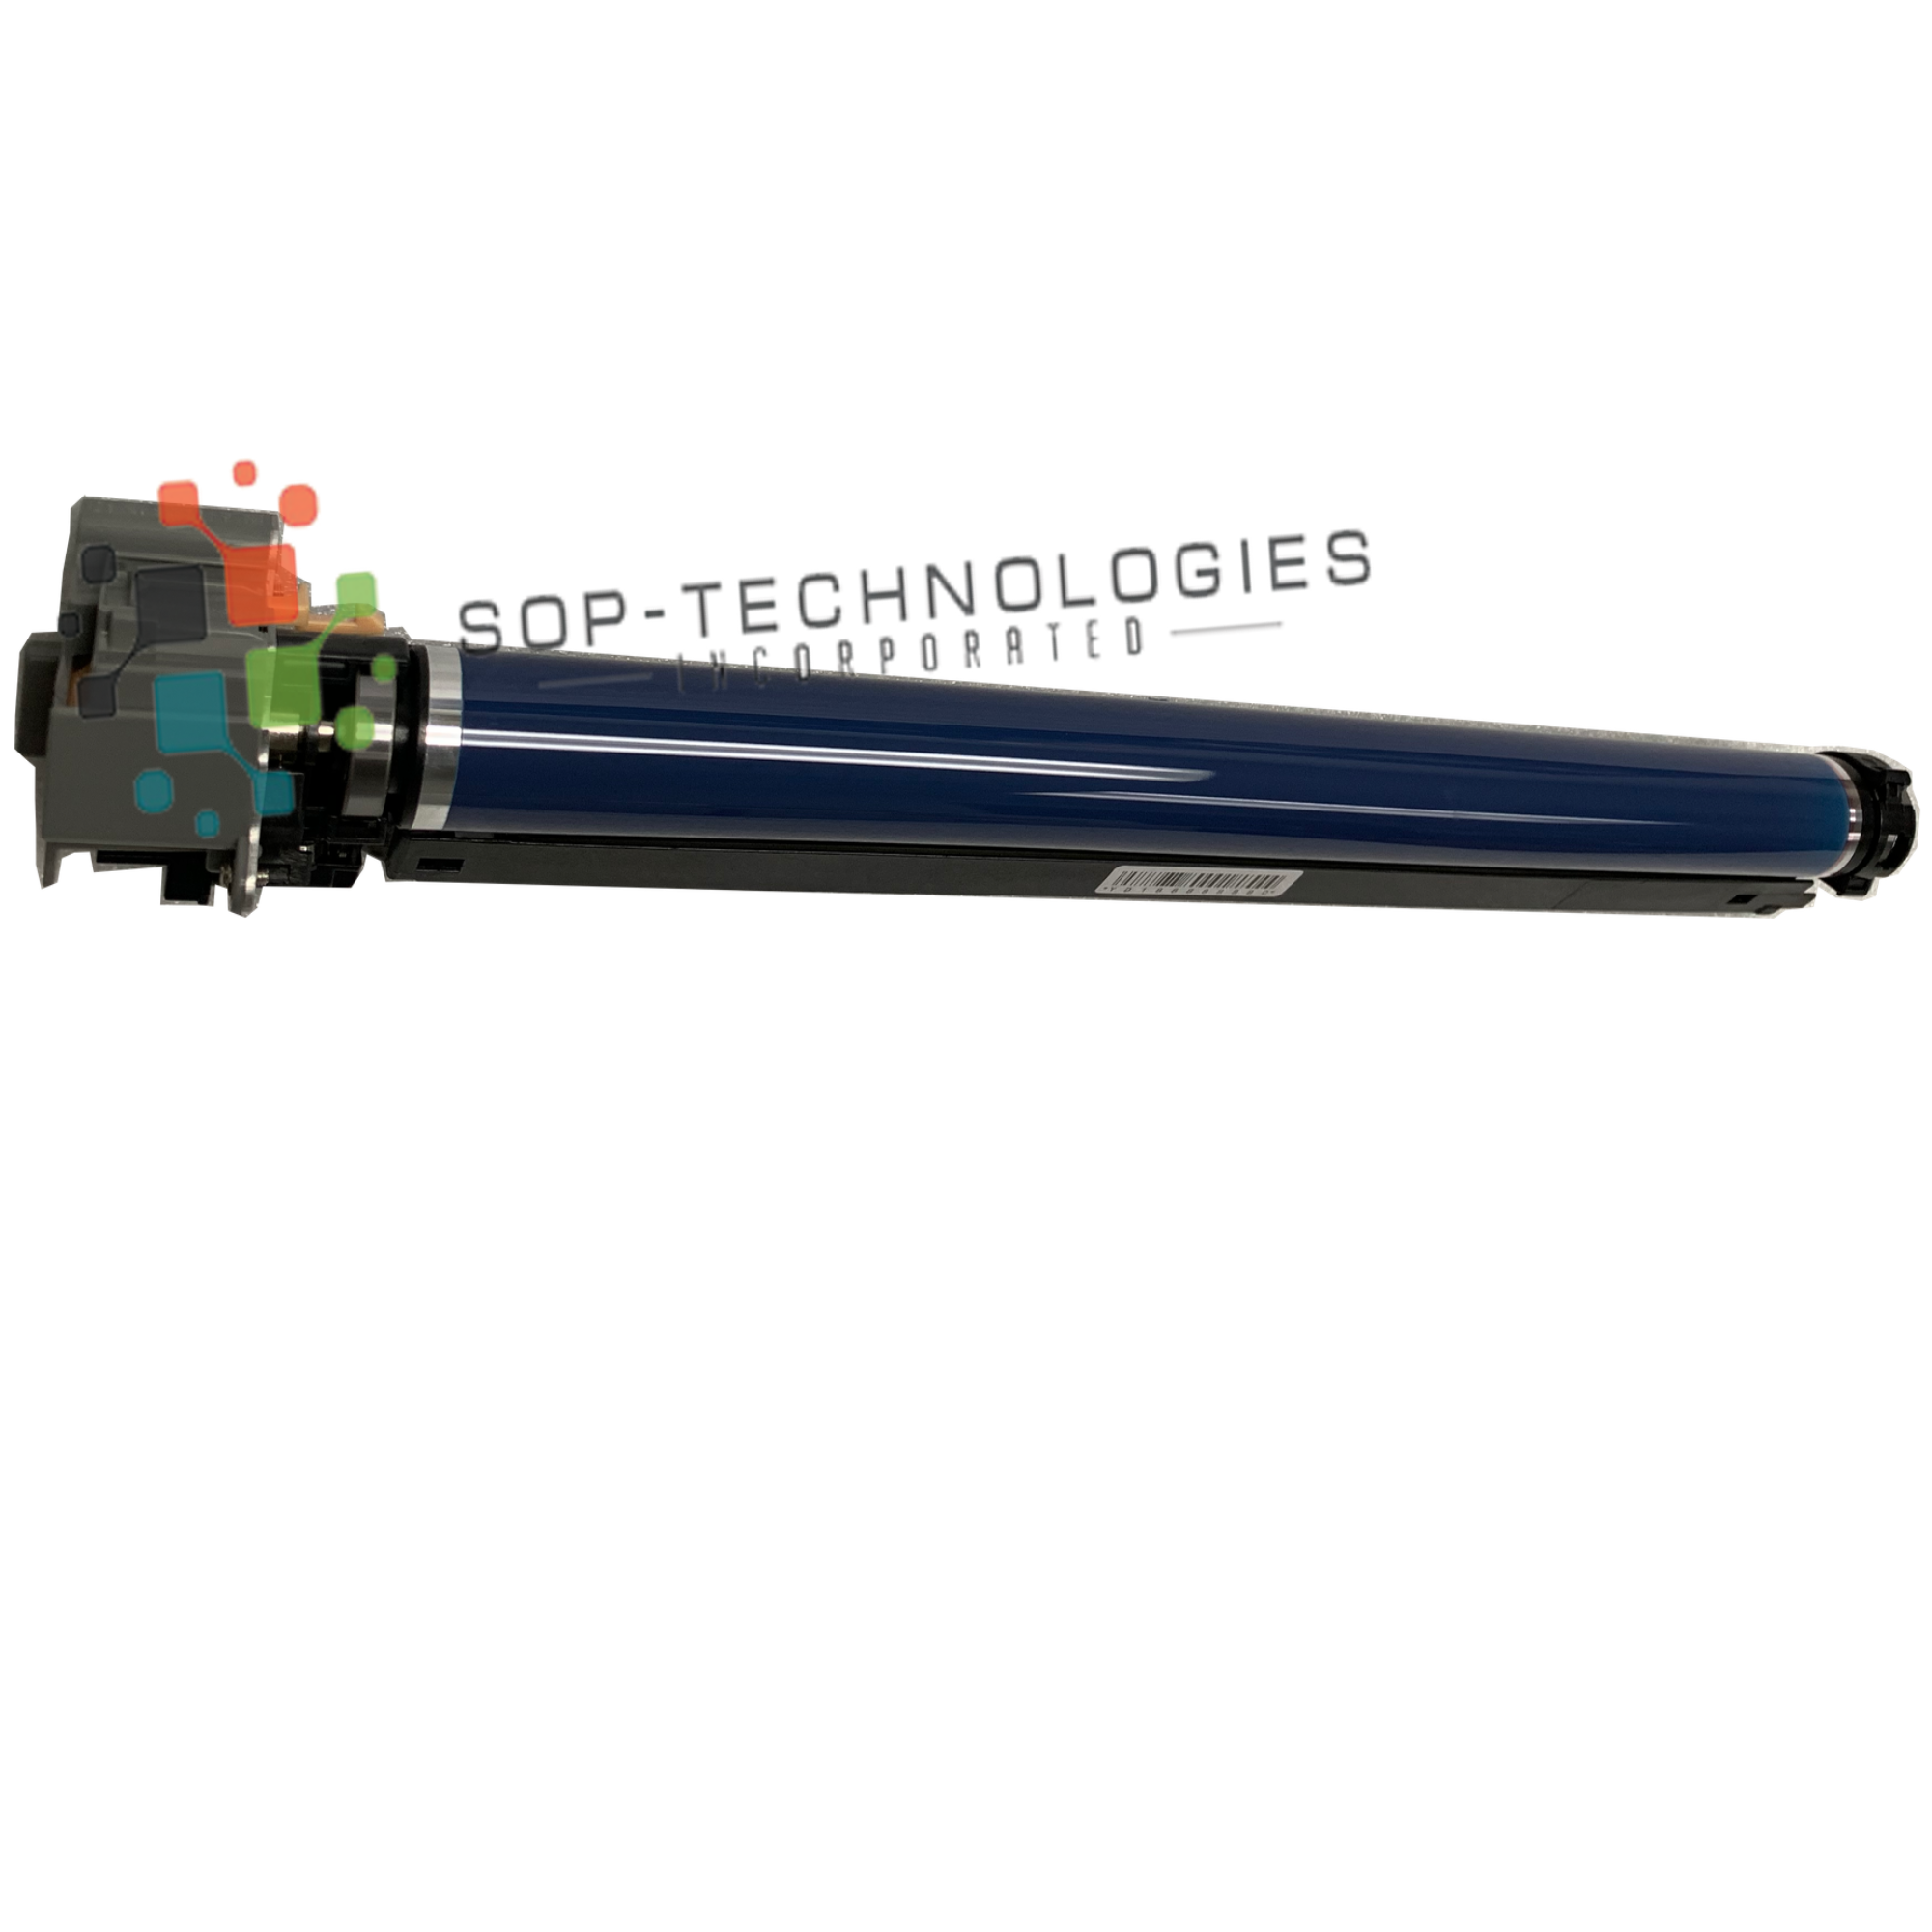 Xerox Phaser 7800 7800DN 7800DX 7800GX 106R01582 Drum unit CMYK NON-OEM USA - SOP-TECHNOLOGIES, INC.